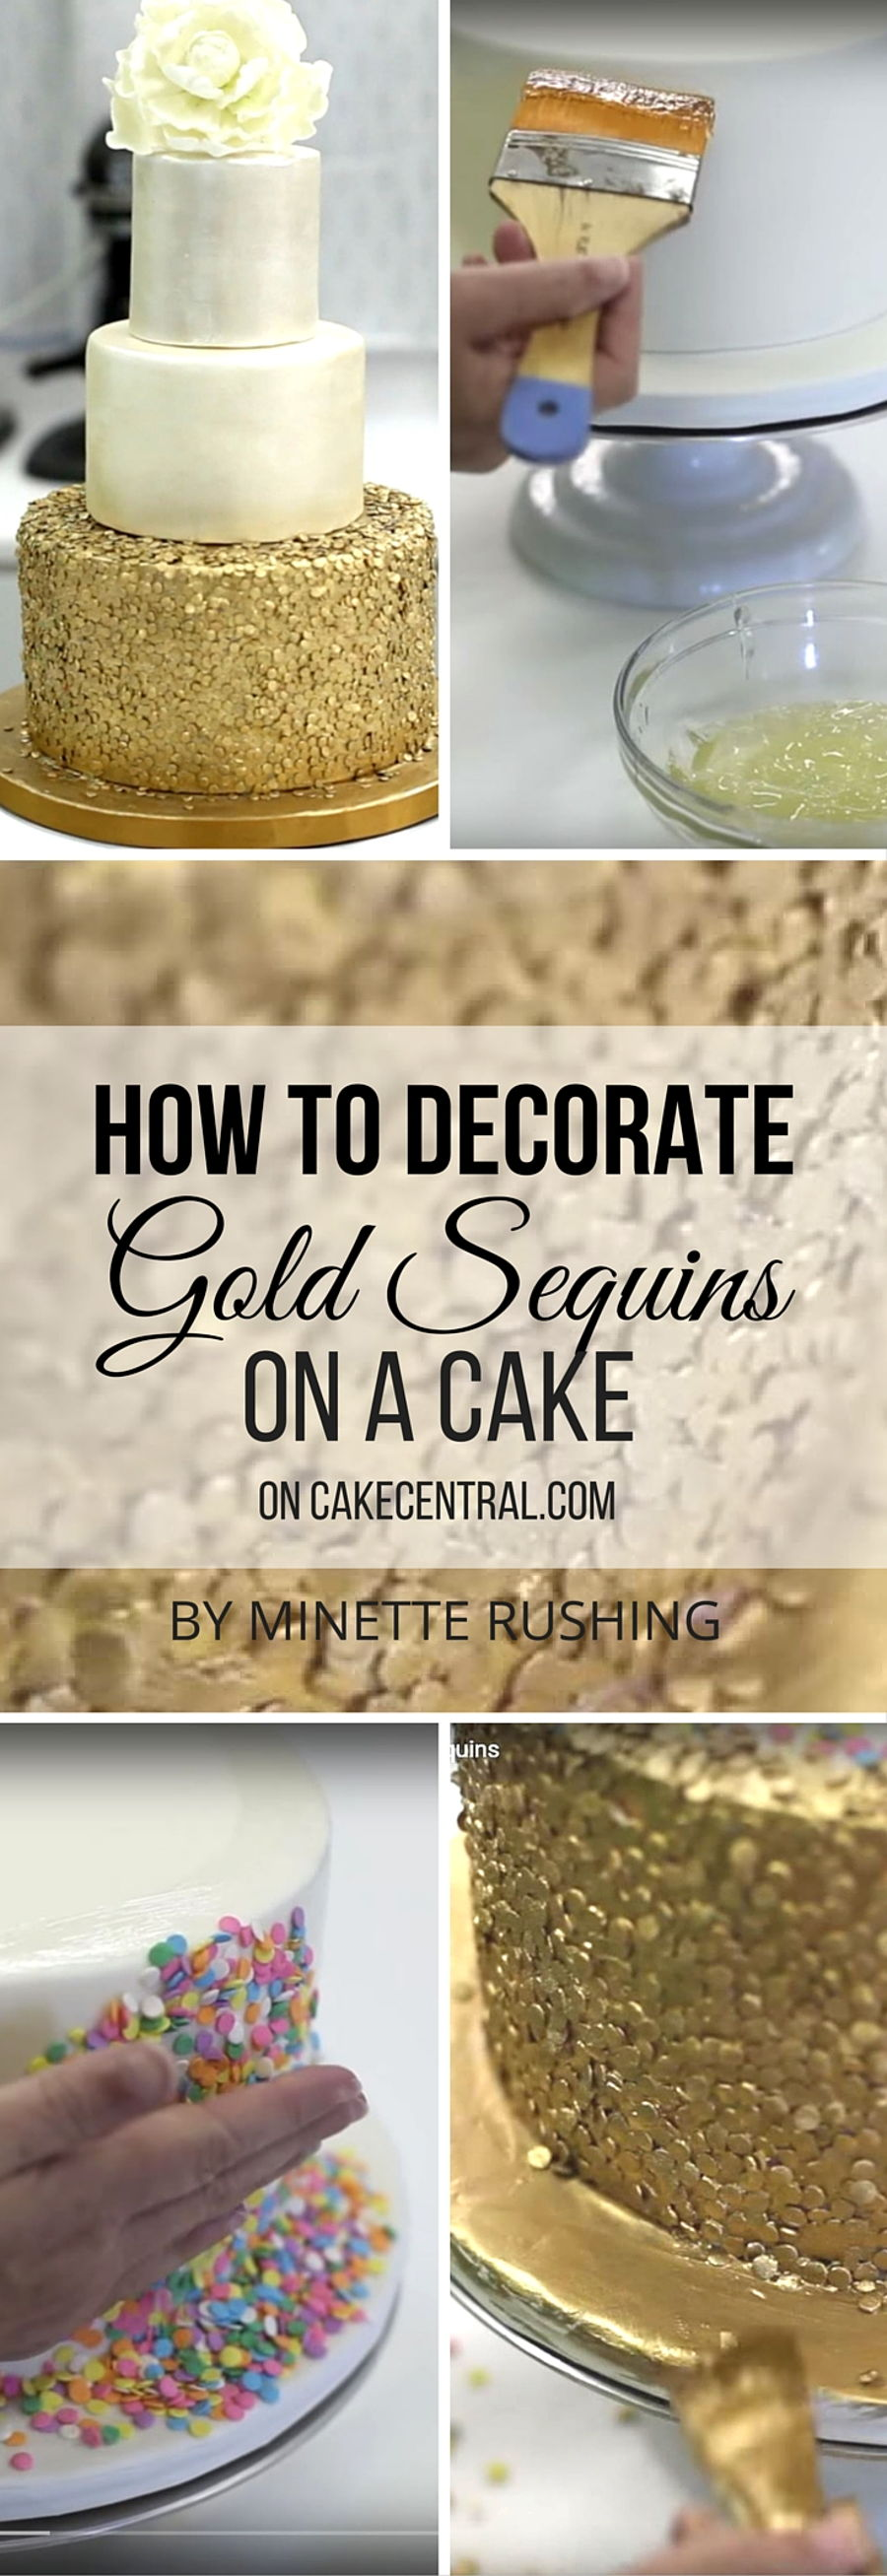 How To Decorate A Cake With Gold Sequins Cakecentral Com